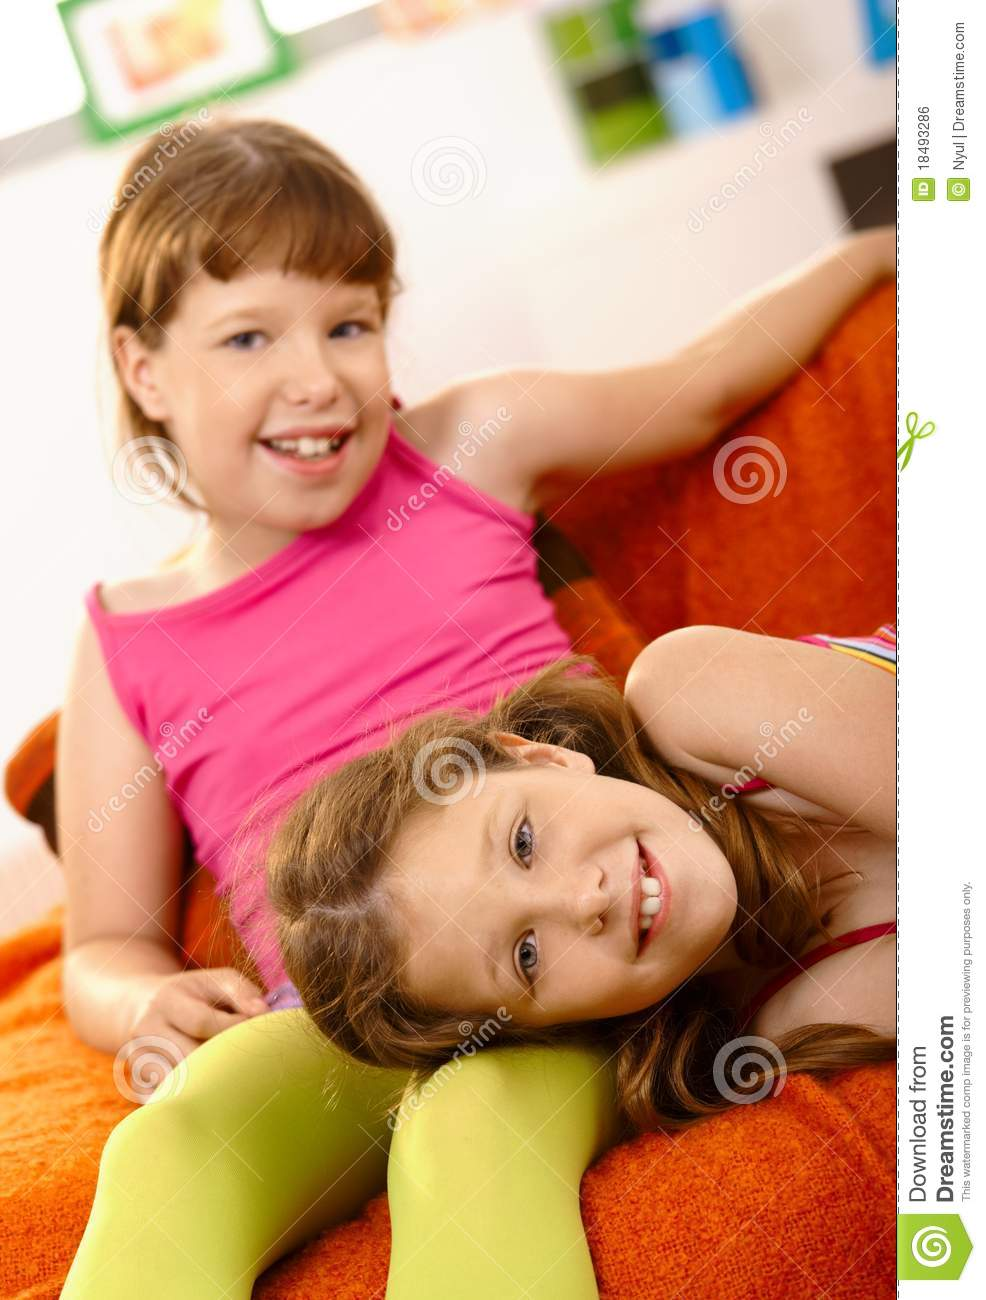 two girls relaxing at home royalty free stock image. Black Bedroom Furniture Sets. Home Design Ideas